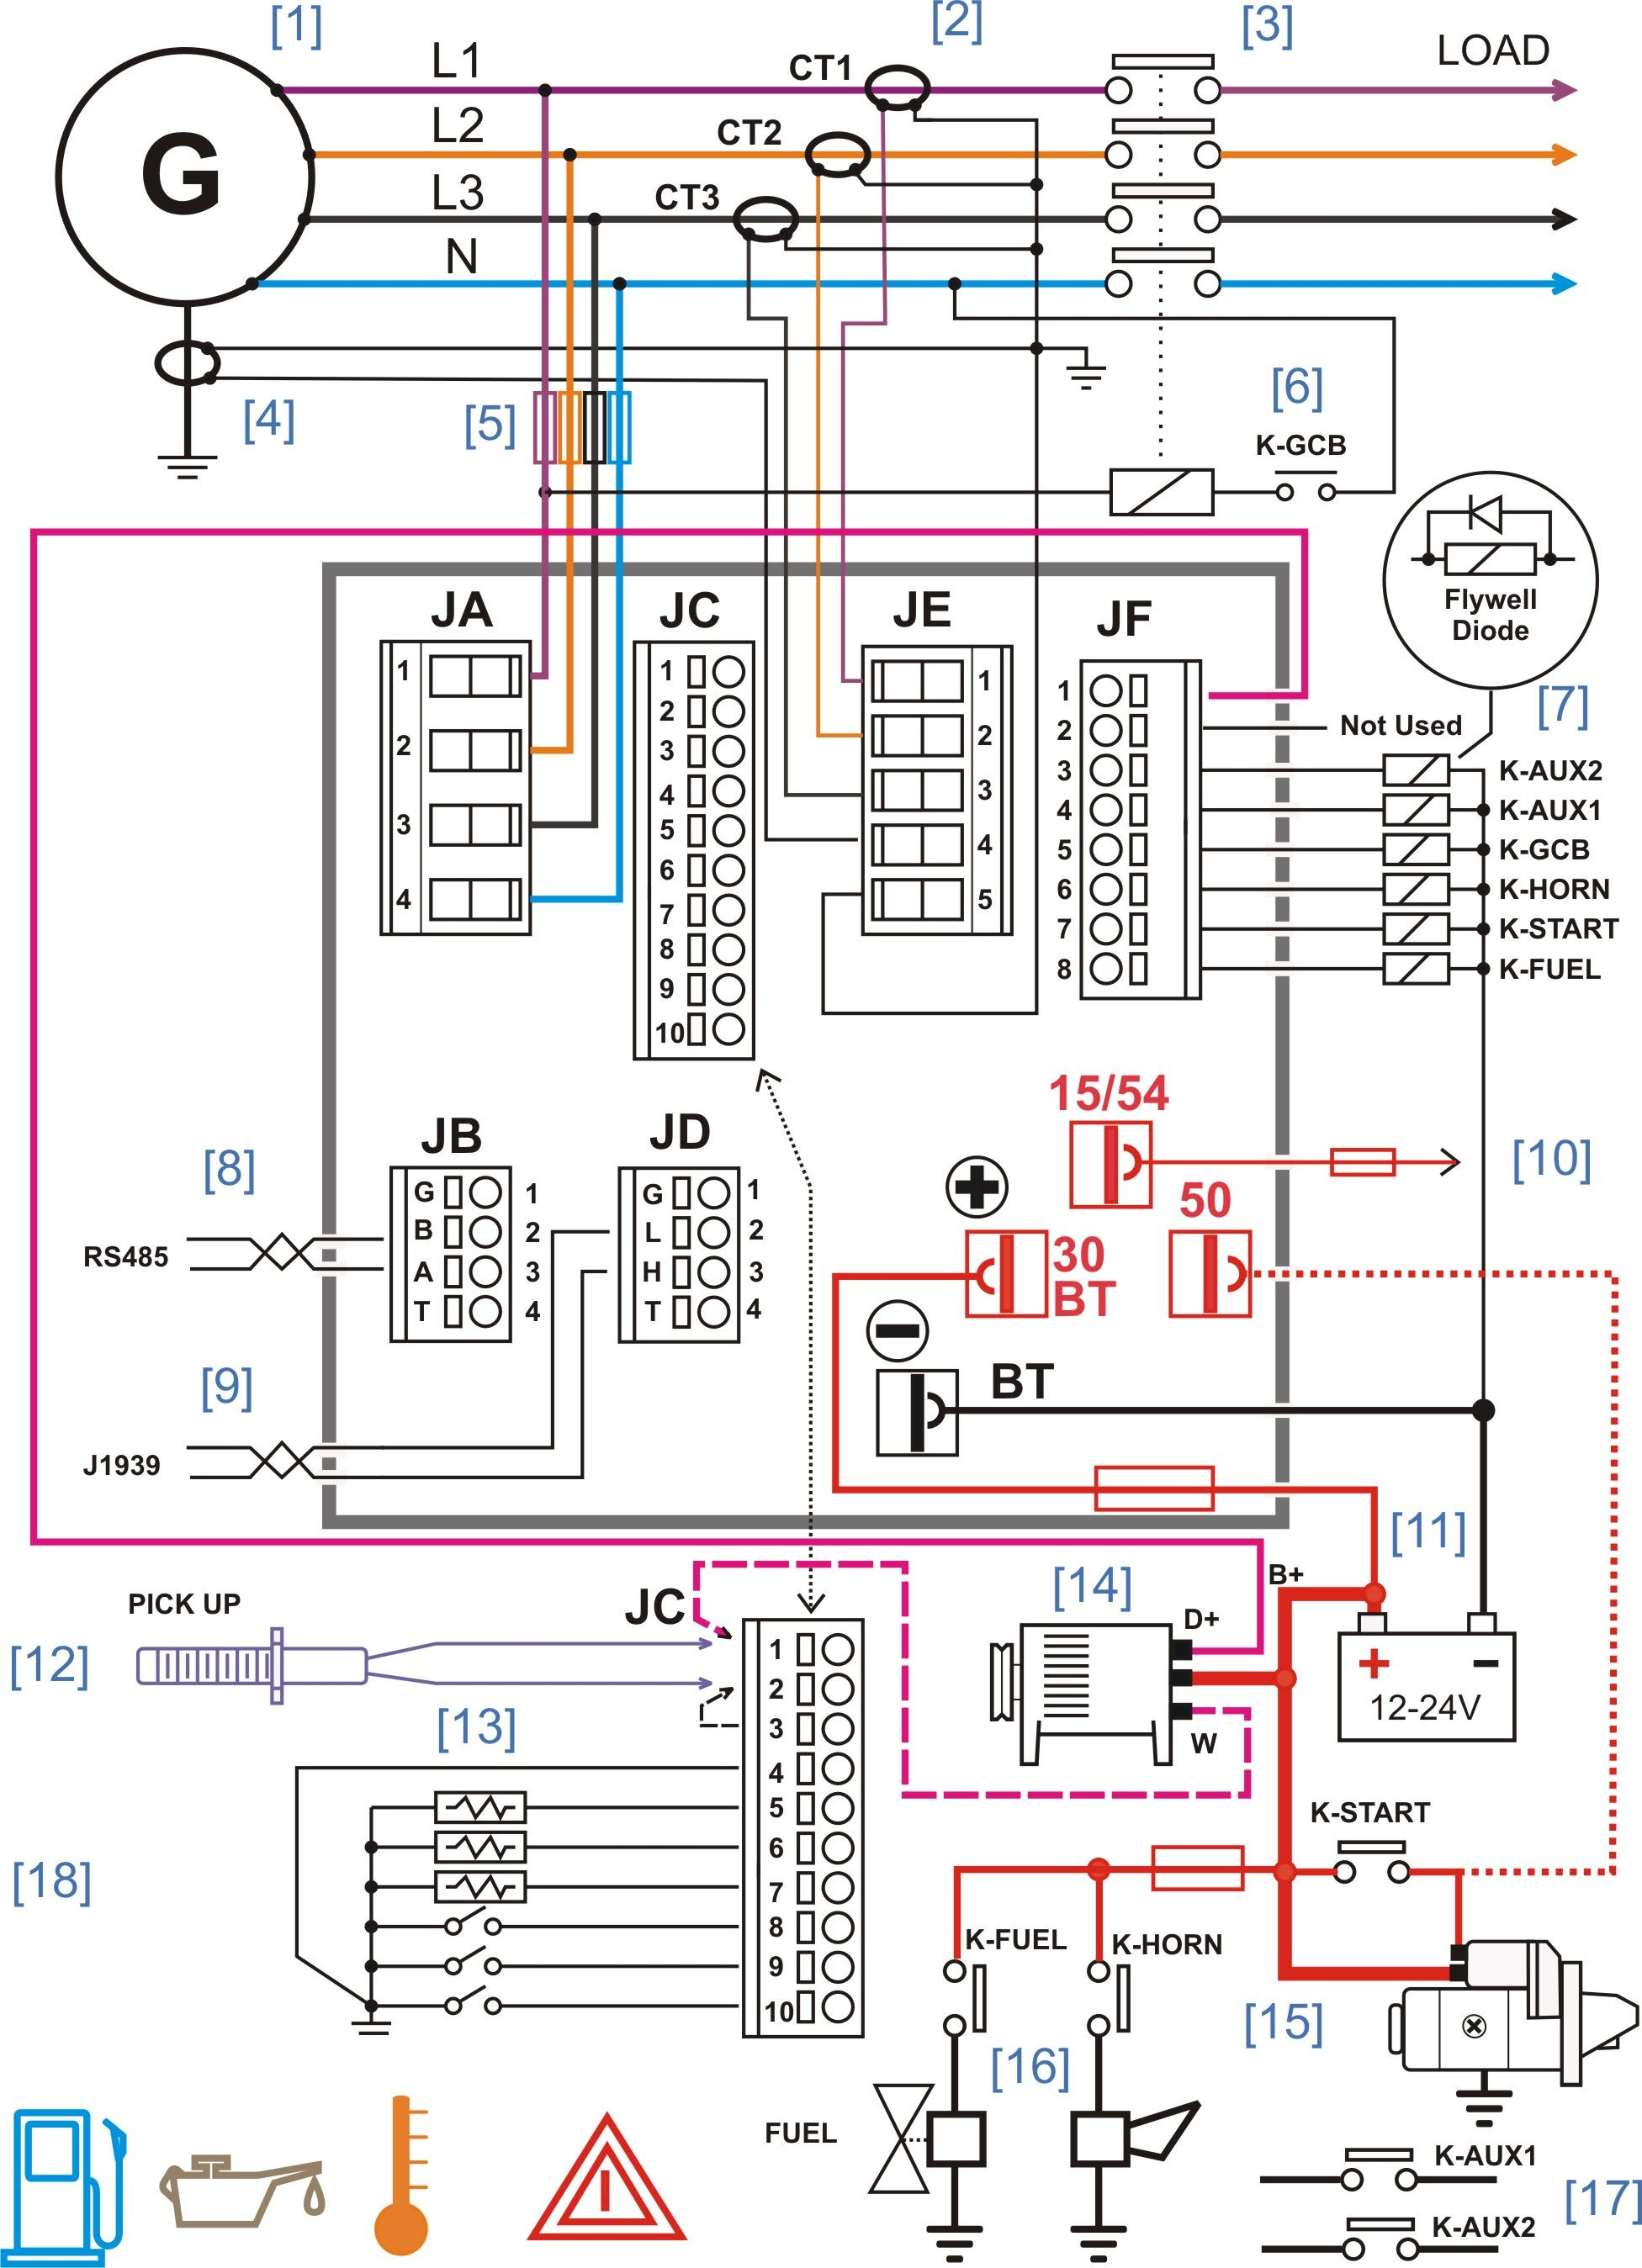 diesel generator control panel wiring diagram diesel generators in 3-Way Wiring Diagram diesel generator control panel wiring diagram